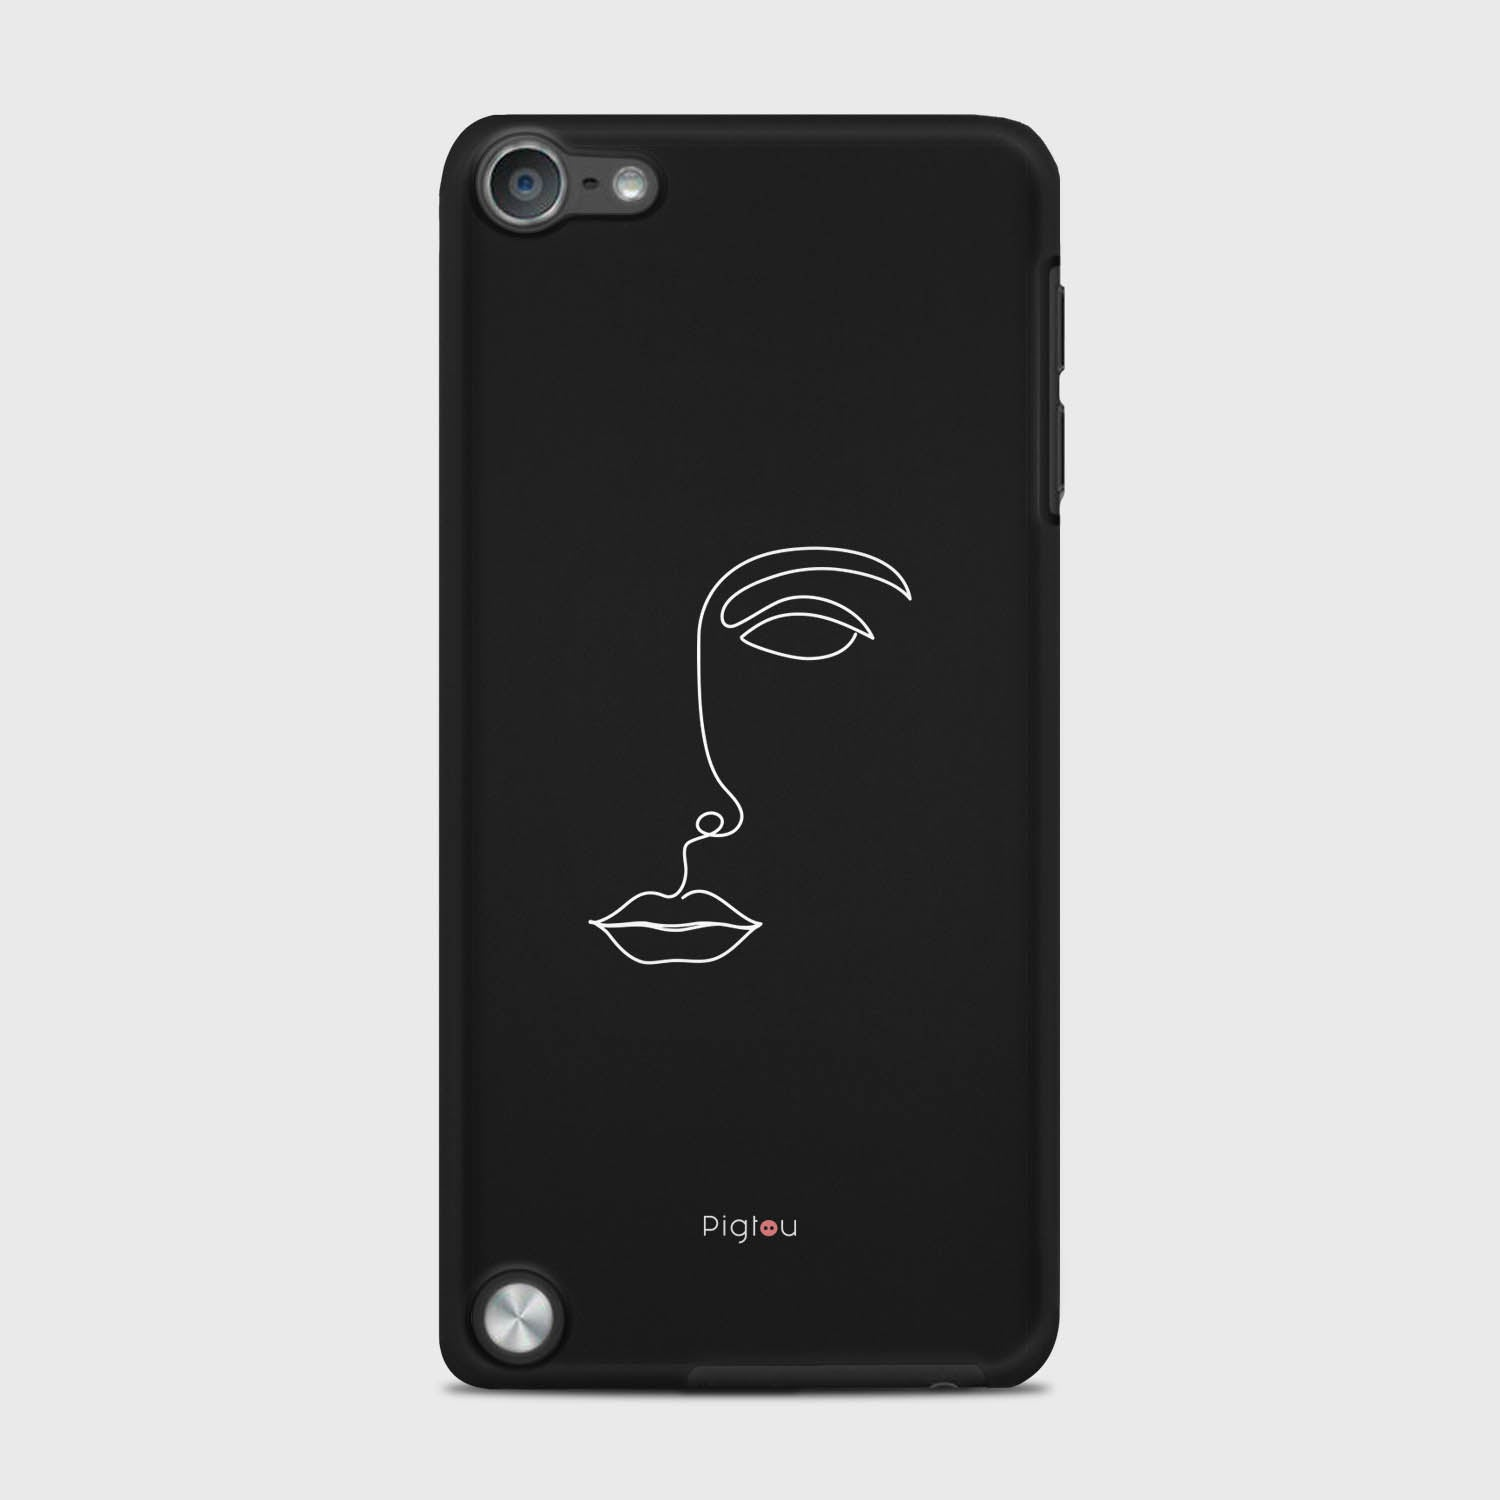 SILHOUETTE FACE iPod 5 cases | Pigtou